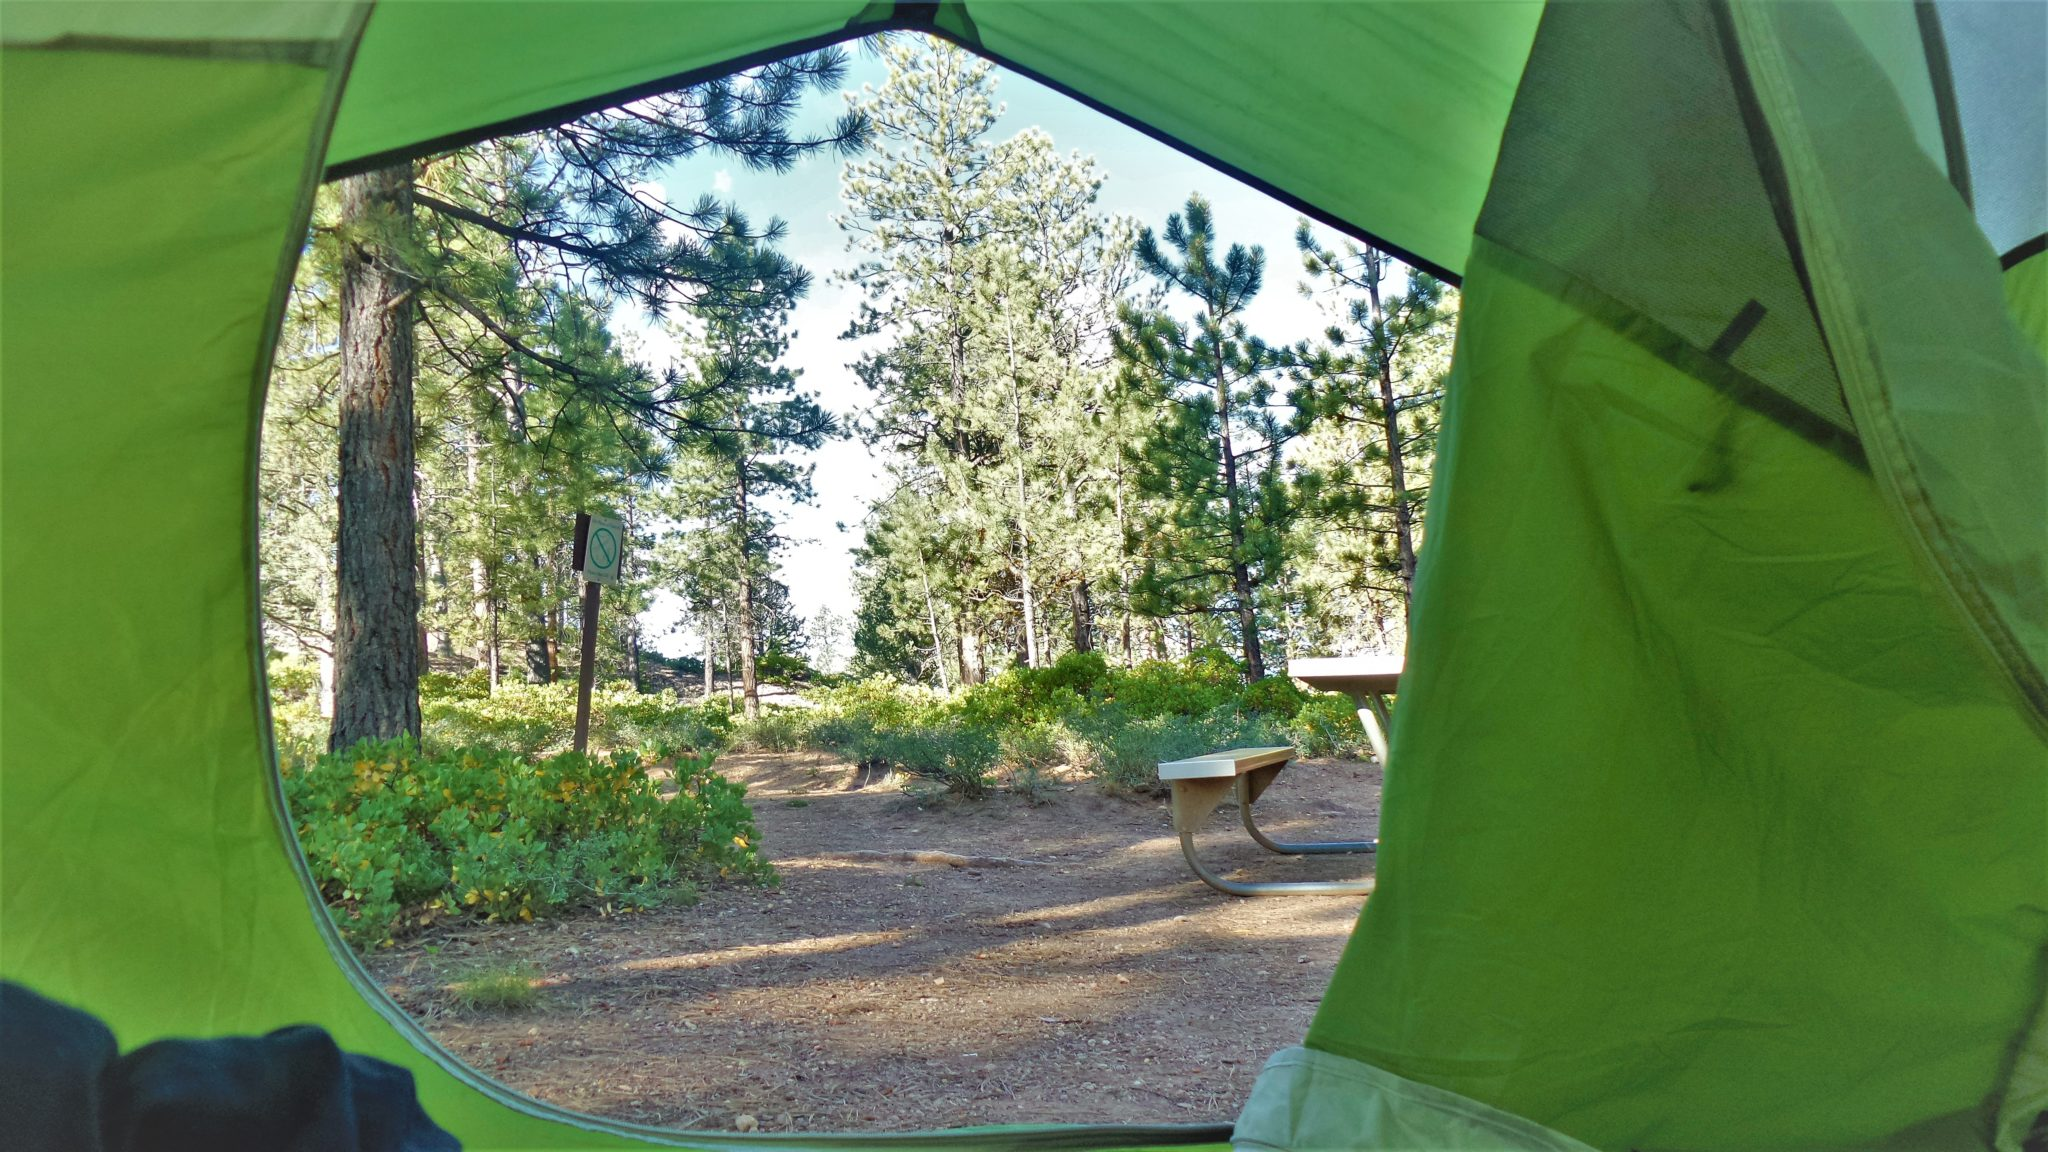 Tent view from Bryce Canyon national park camping